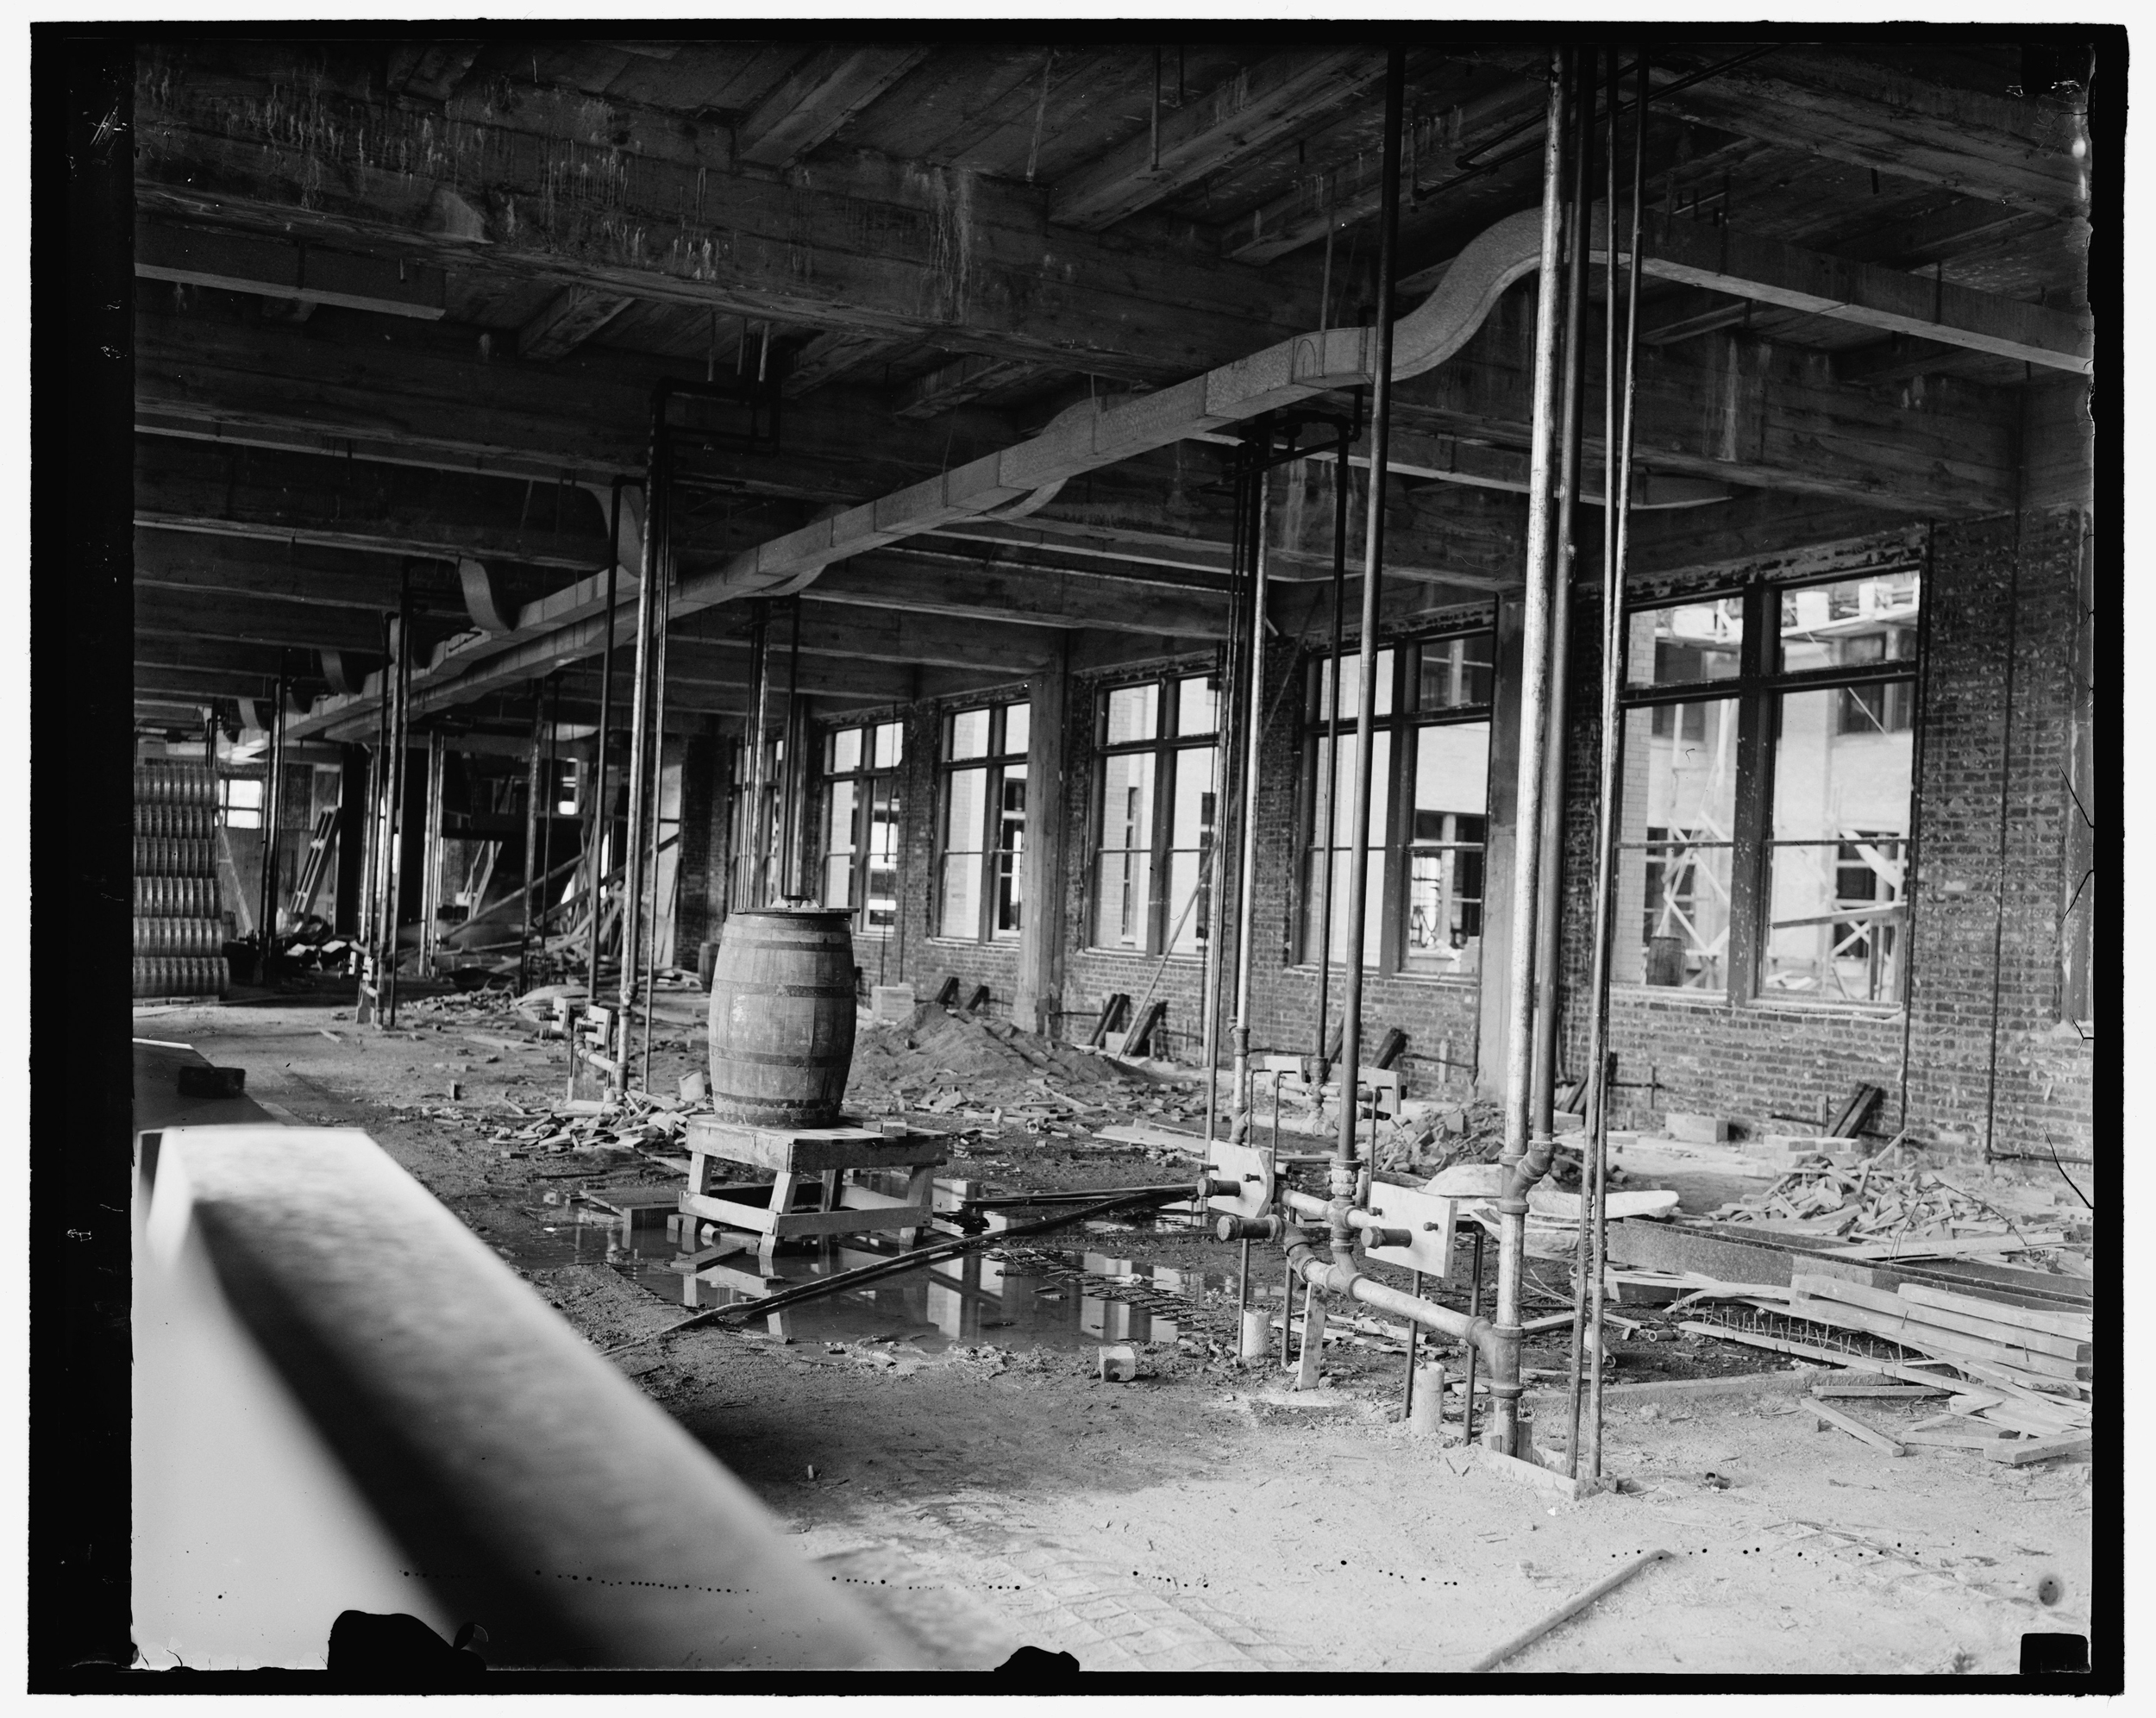 Interior construction of the FTC building, c. 1938.